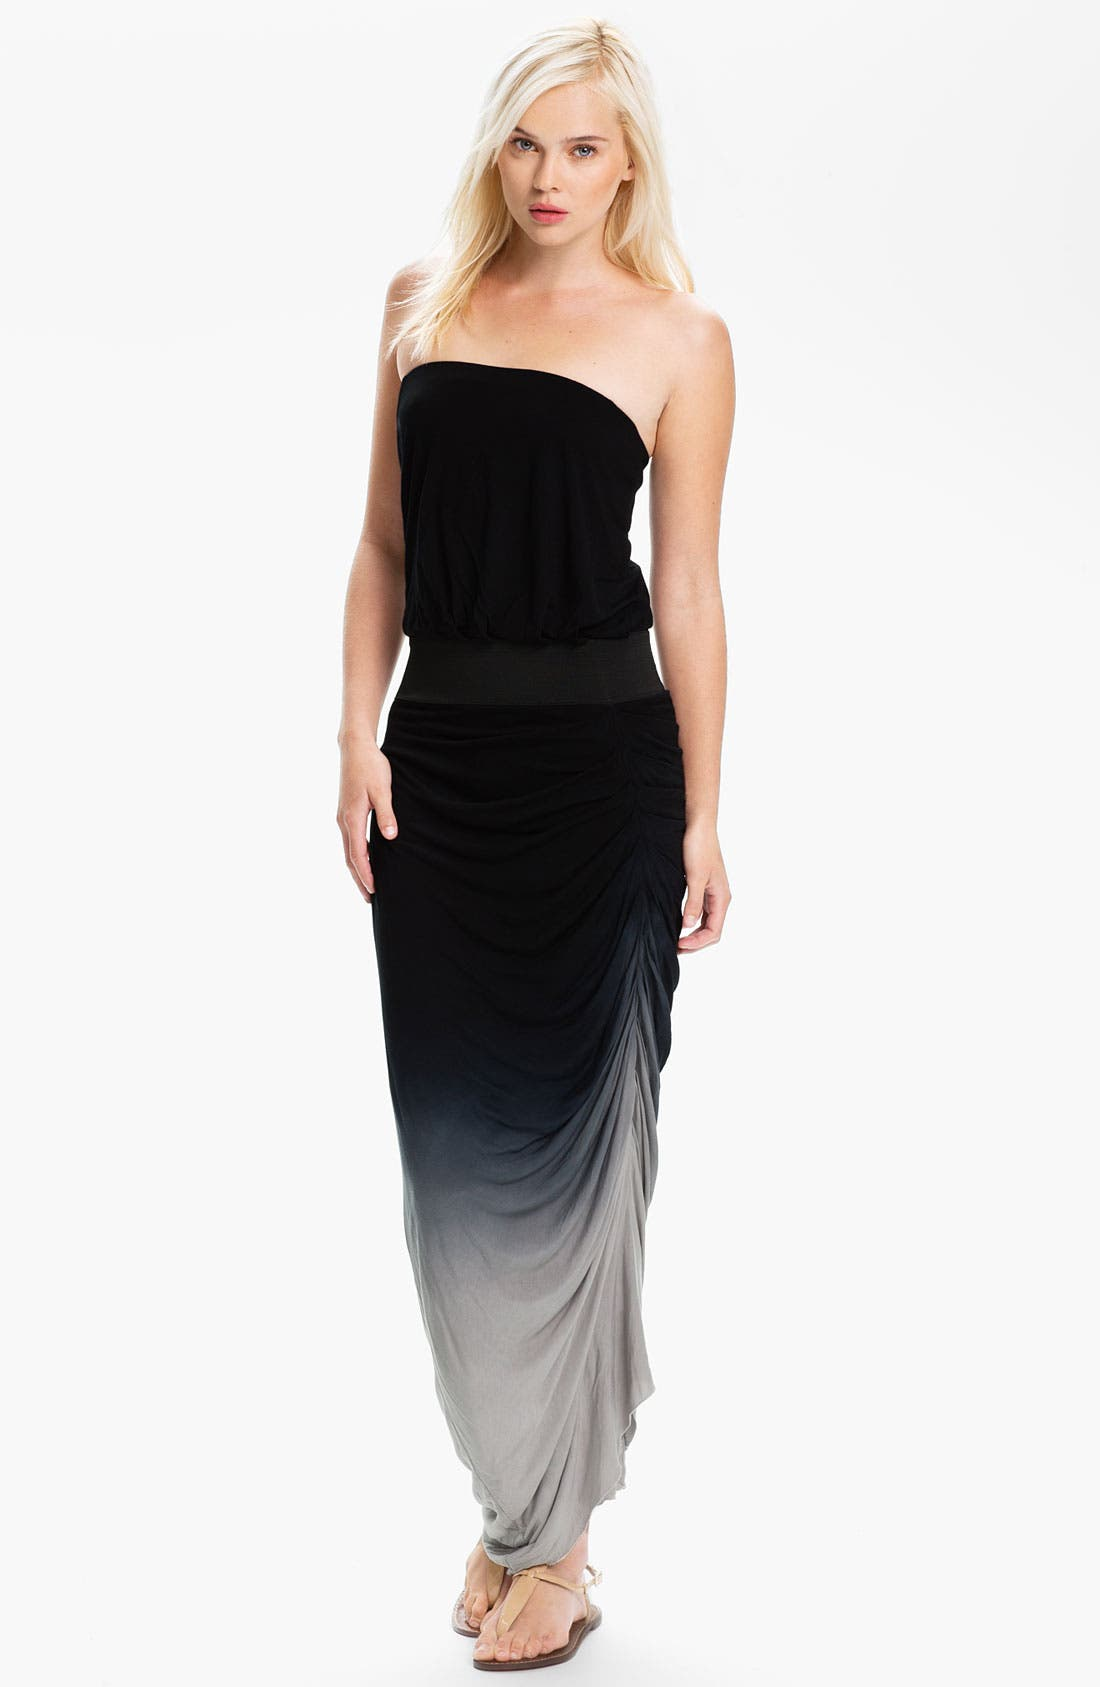 Alternate Image 1 Selected - Young, Fabulous & Broke 'Tania' Strapless Dress